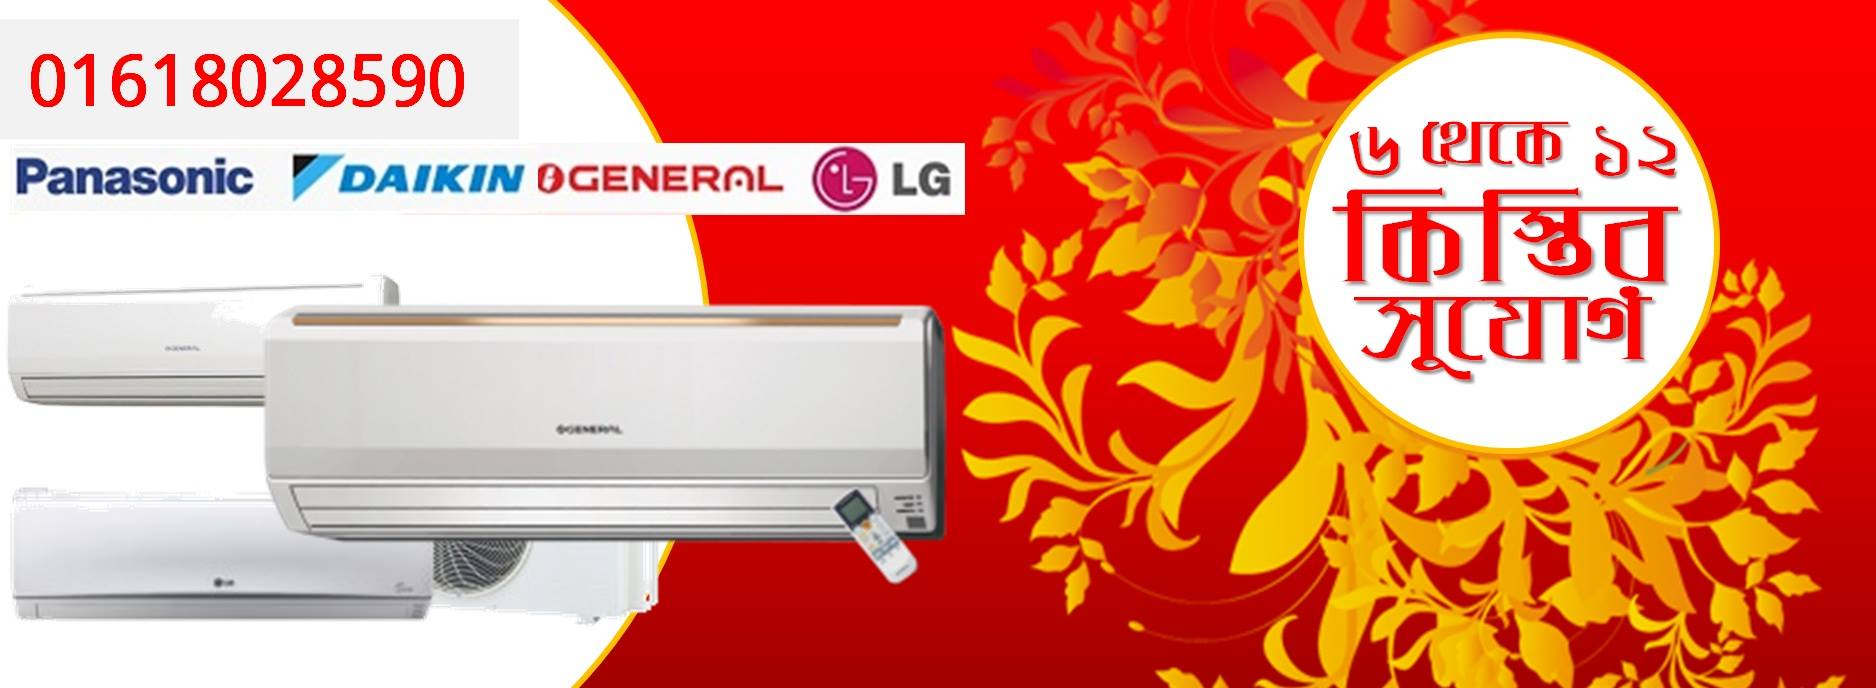 Panasonic O General LG Gree Carrier Air Conditioner Review in Bangladesh